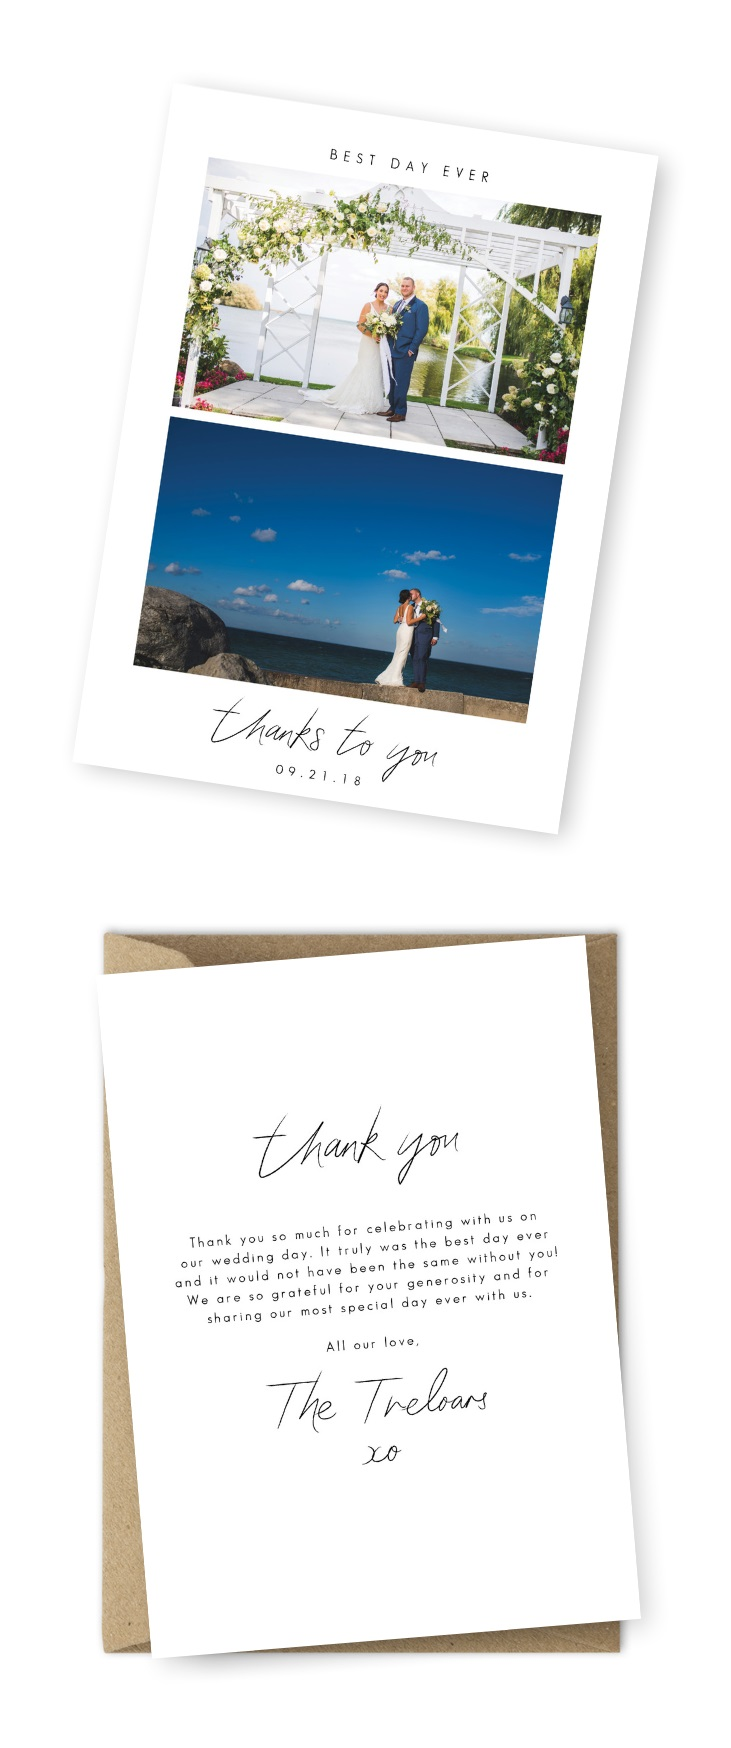 009 Frightening Thank You Card Template Wedding Design  Free Printable PublisherFull